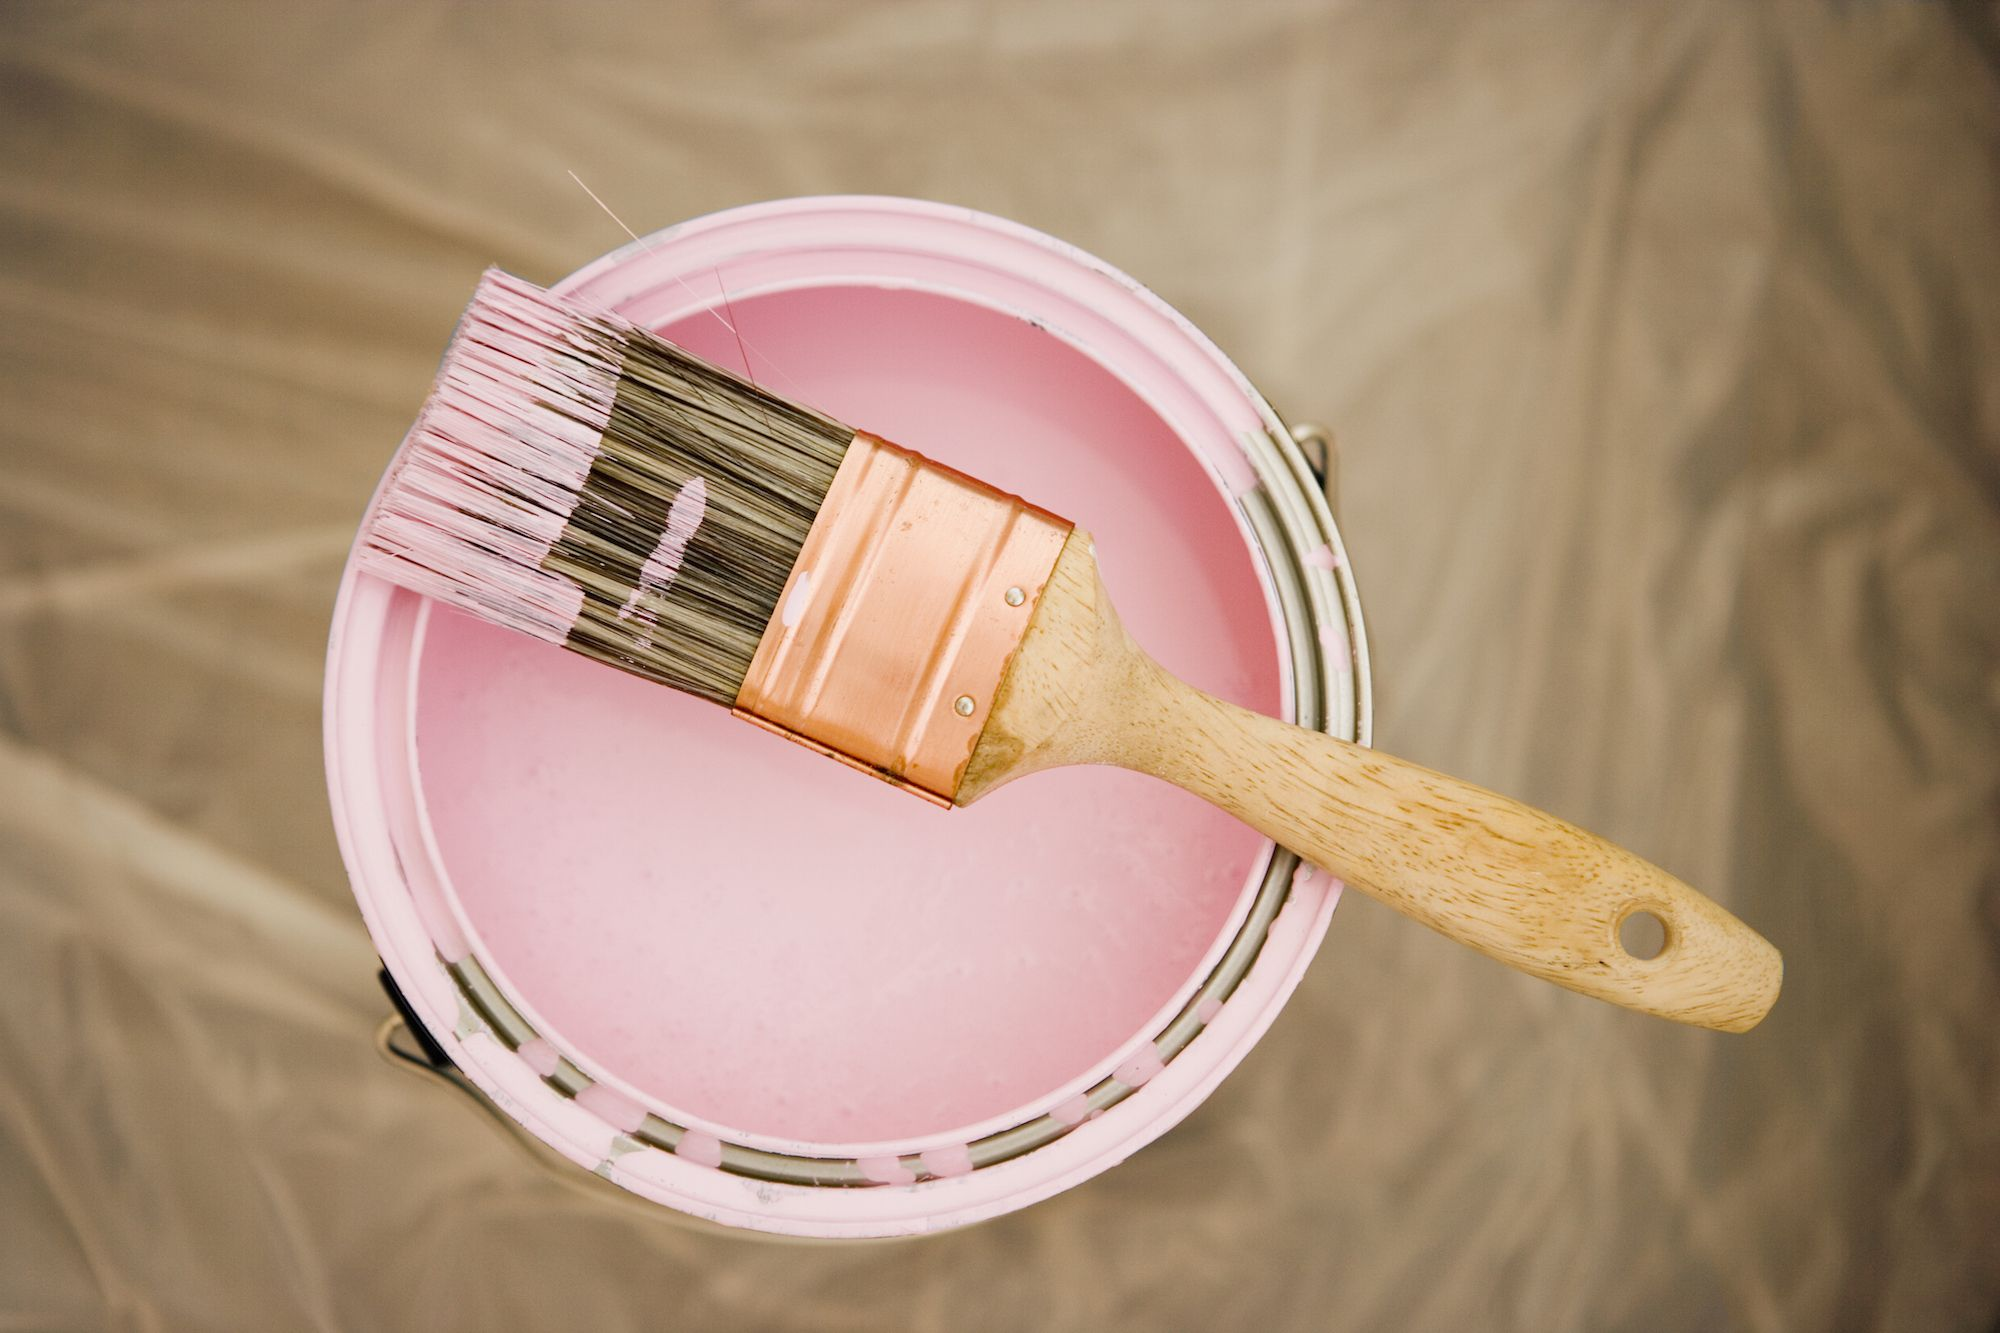 14 Best Pink Paint Colors - Millennial Pink Interior Paint Shades